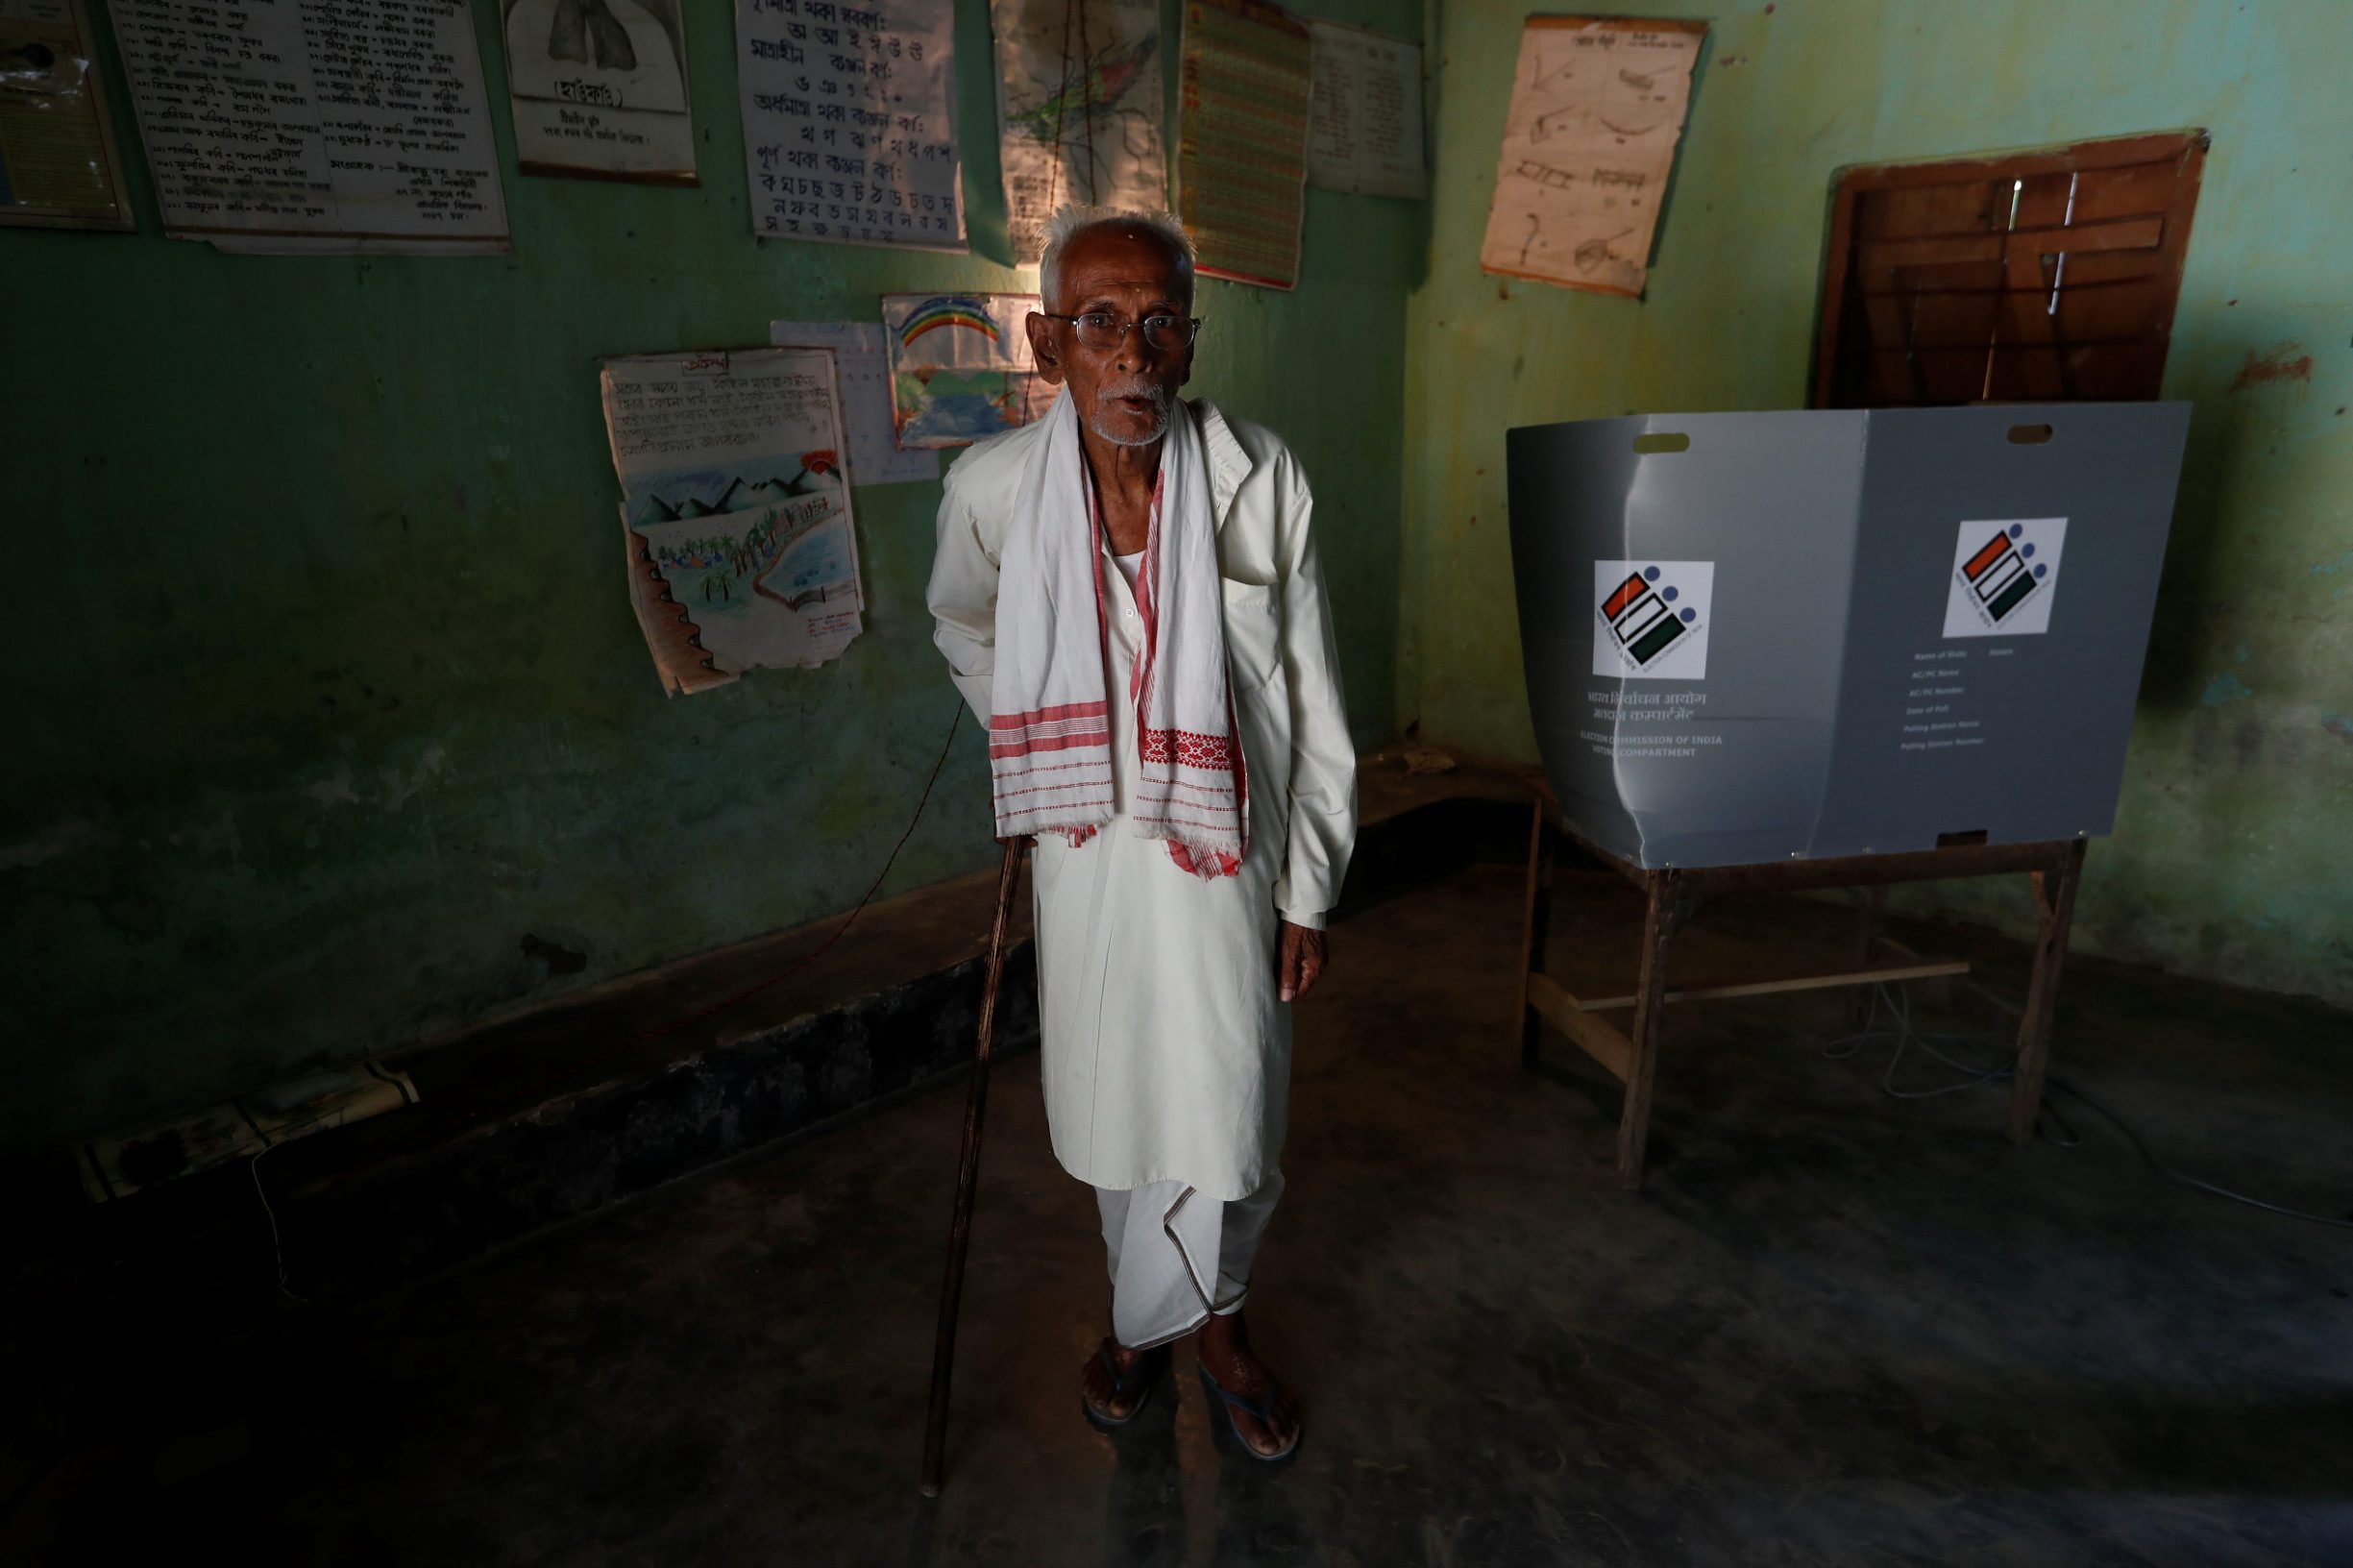 A man leaves after casting his vote at a polling station in Majuli, a large river island in the Brahmaputra river, in the northeastern Indian state of Assam, India April 11, 2019. REUTERS/Adnan Abidi